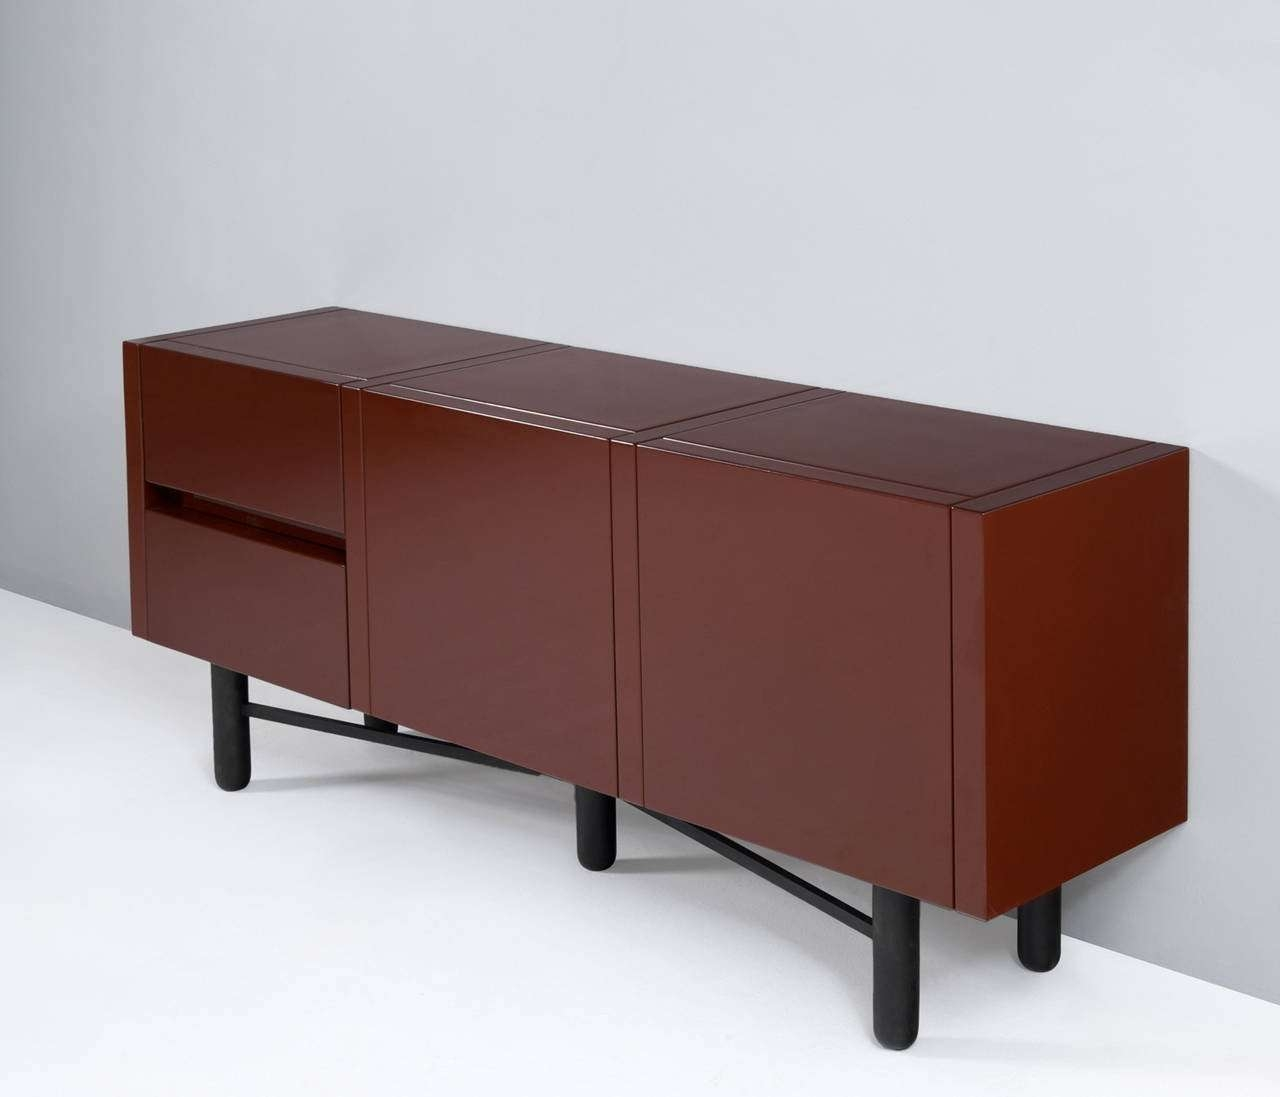 Roche Bobois Red Lacquered High Gloss Sideboard For Sale At 1stdibs Within Gloss Sideboards Furniture (View 20 of 20)